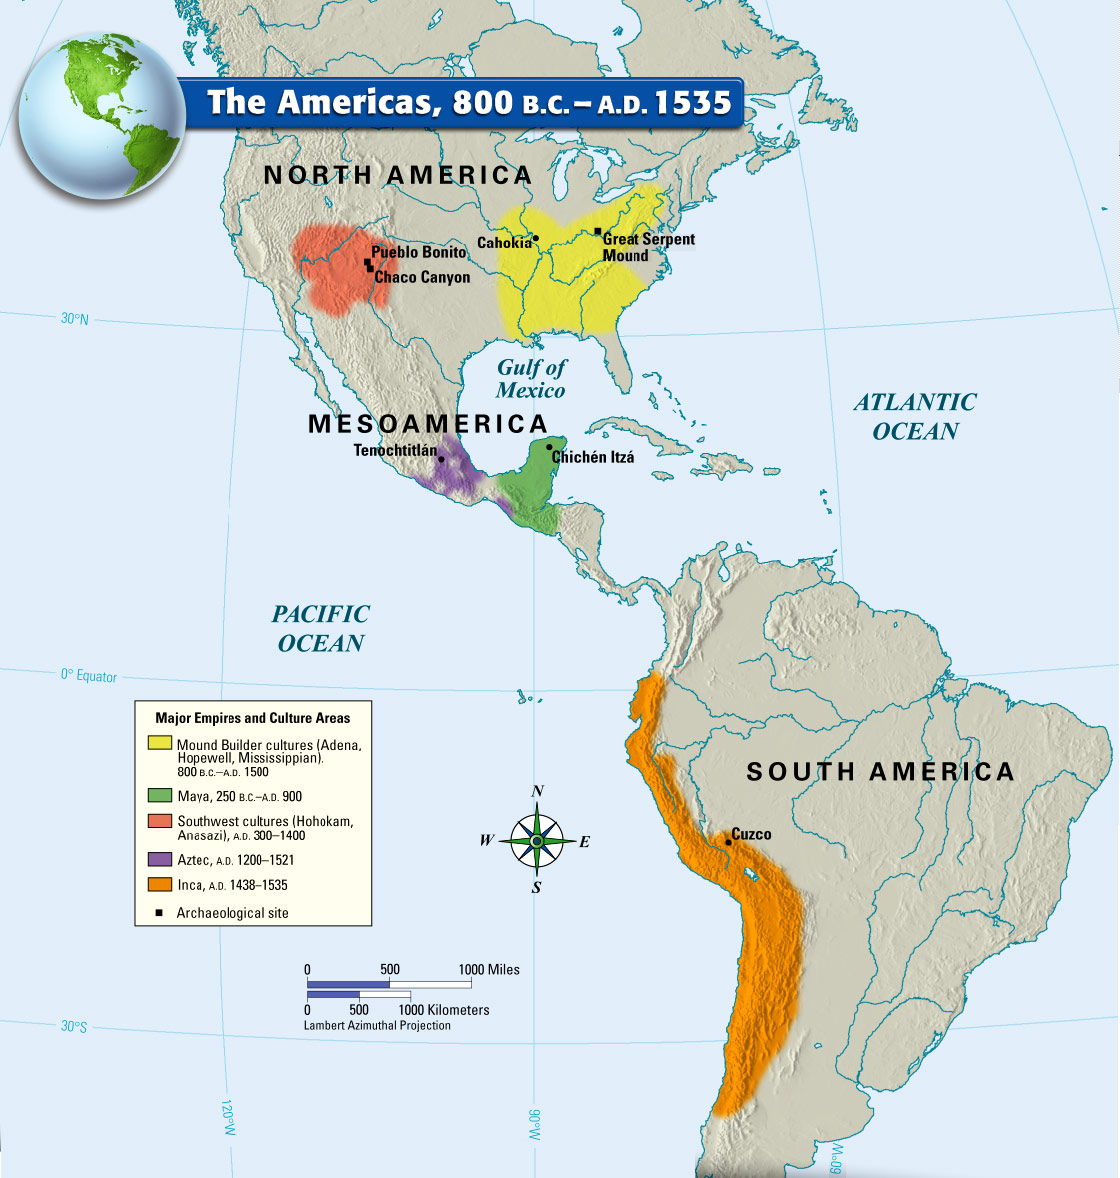 western discovery and conquest The doctrine of discovery,  played a central role in the spanish conquest of the new  in the americas as well as the foundation for the united states' western.